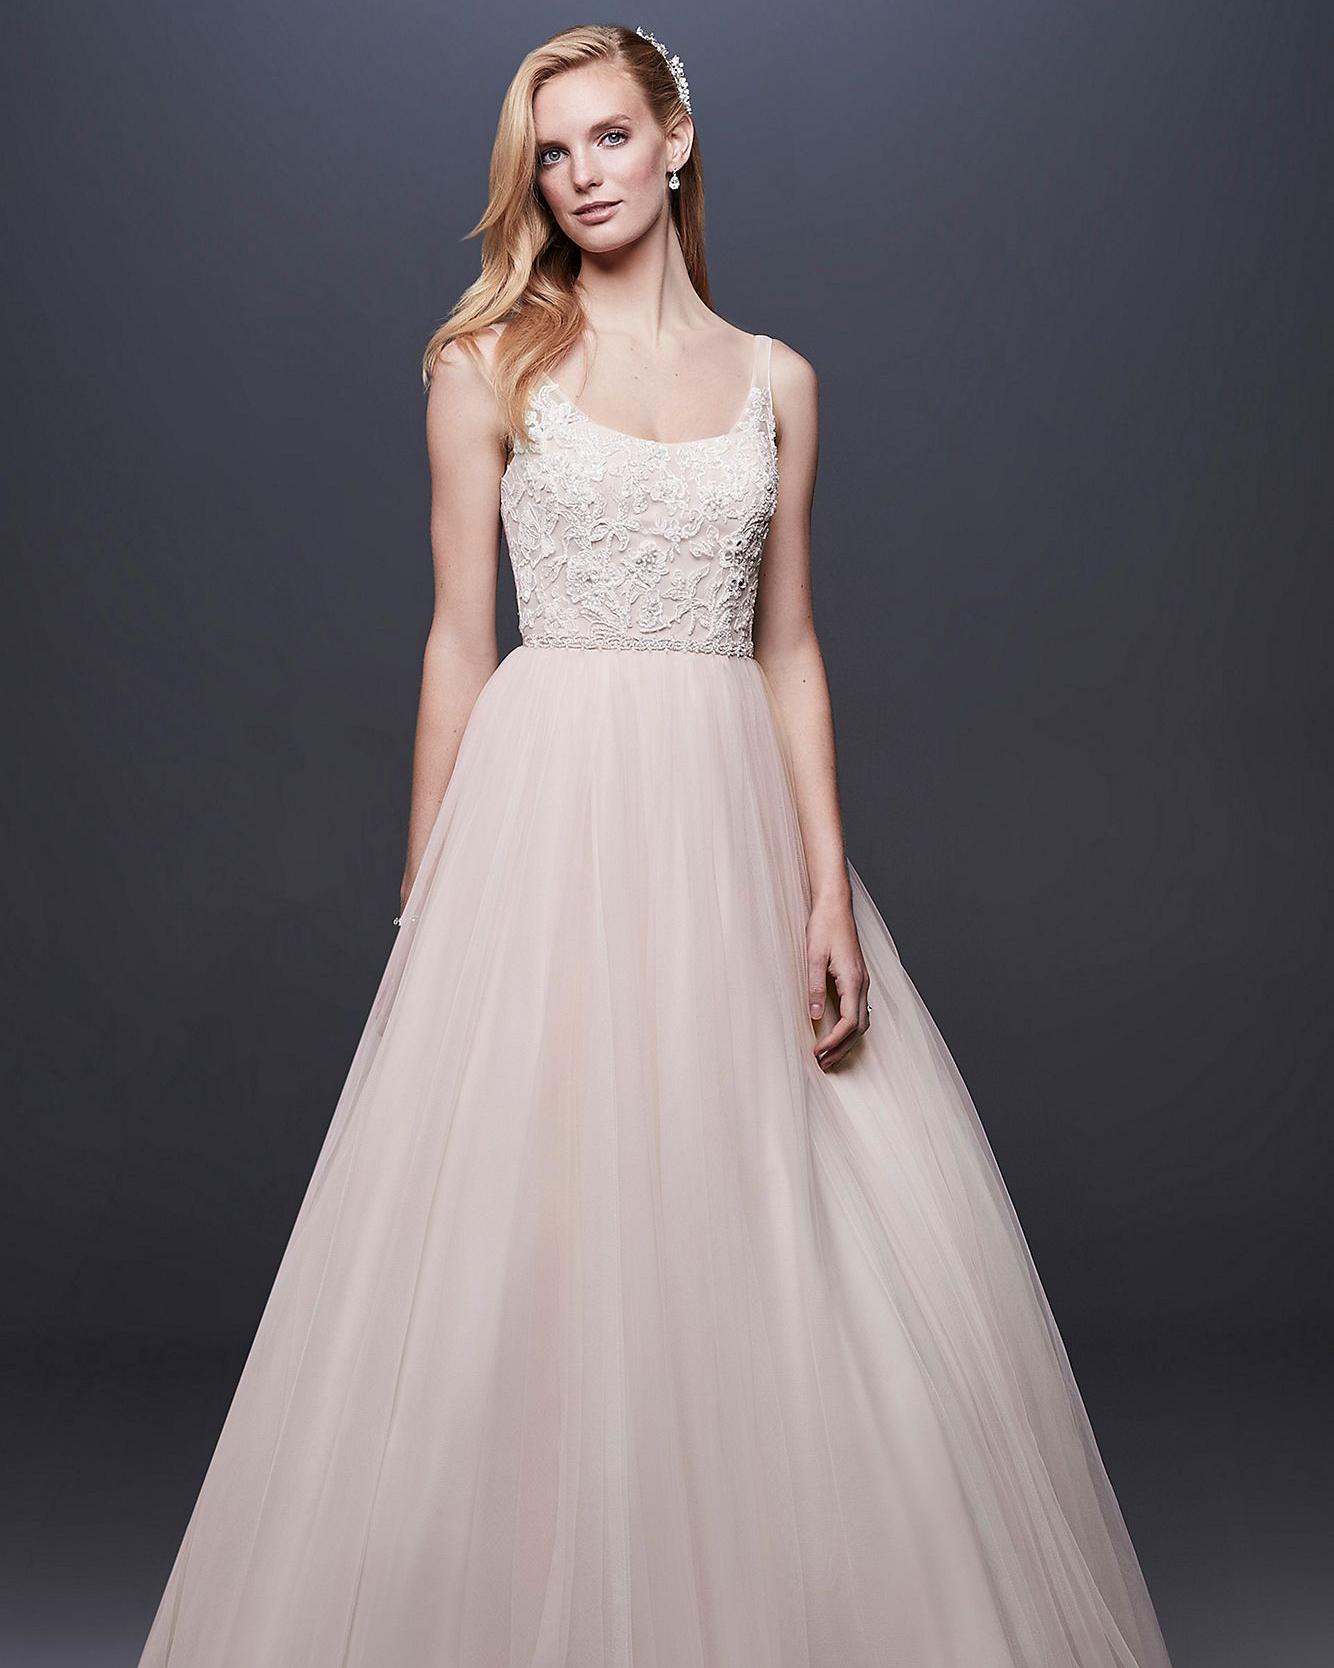 Pearls: David's Bridal